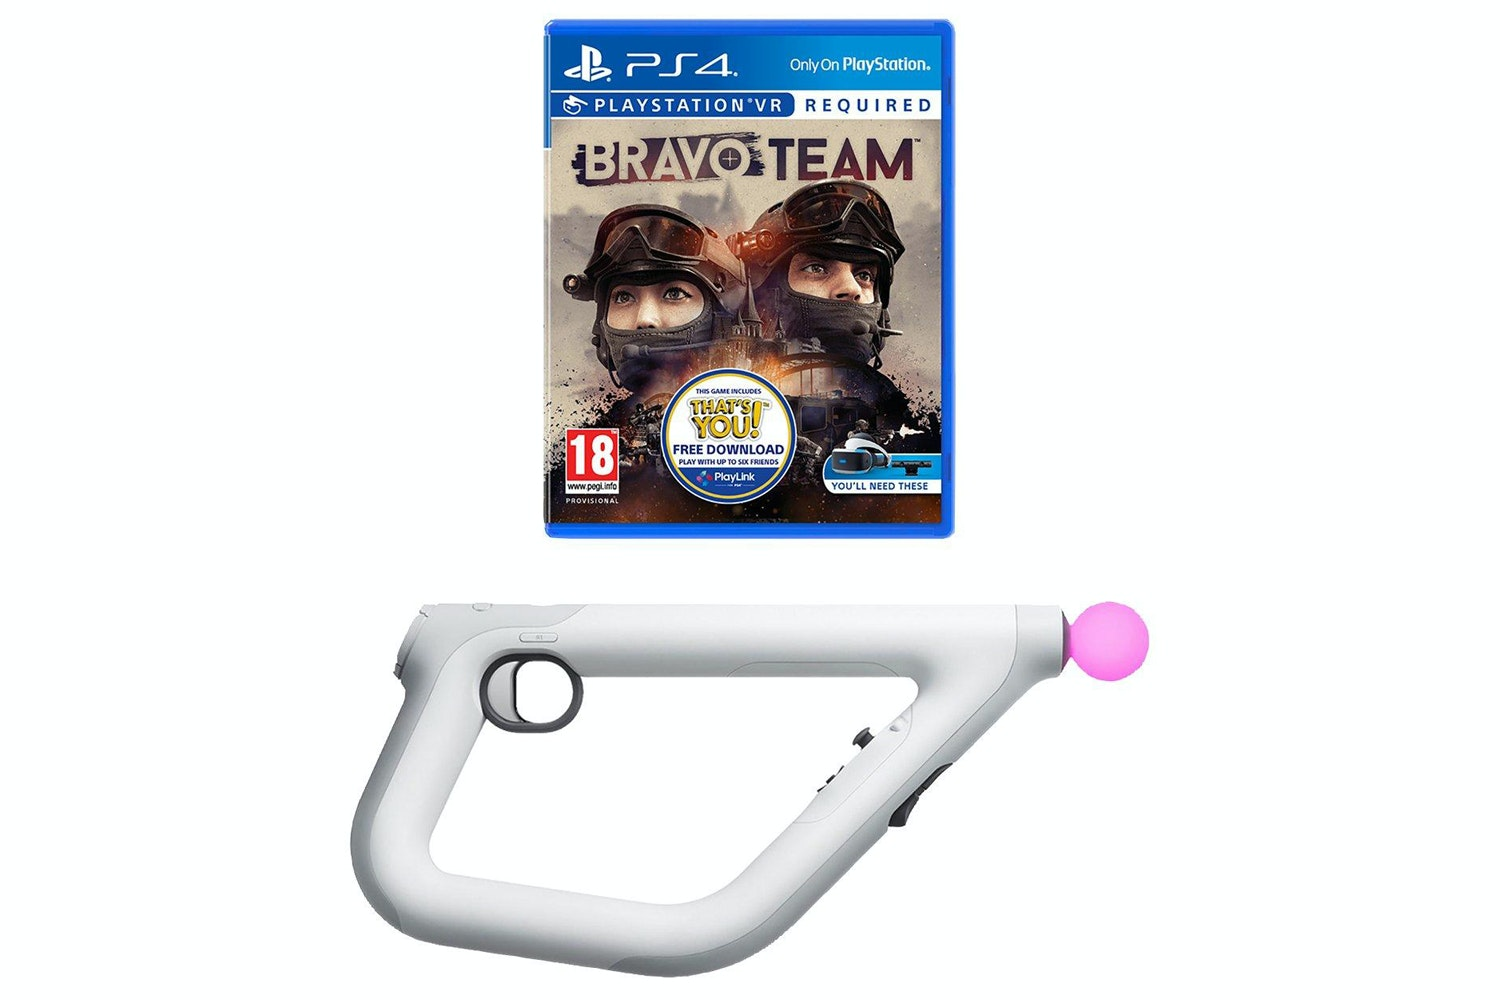 Bravo Team & Aim Controller | PS4